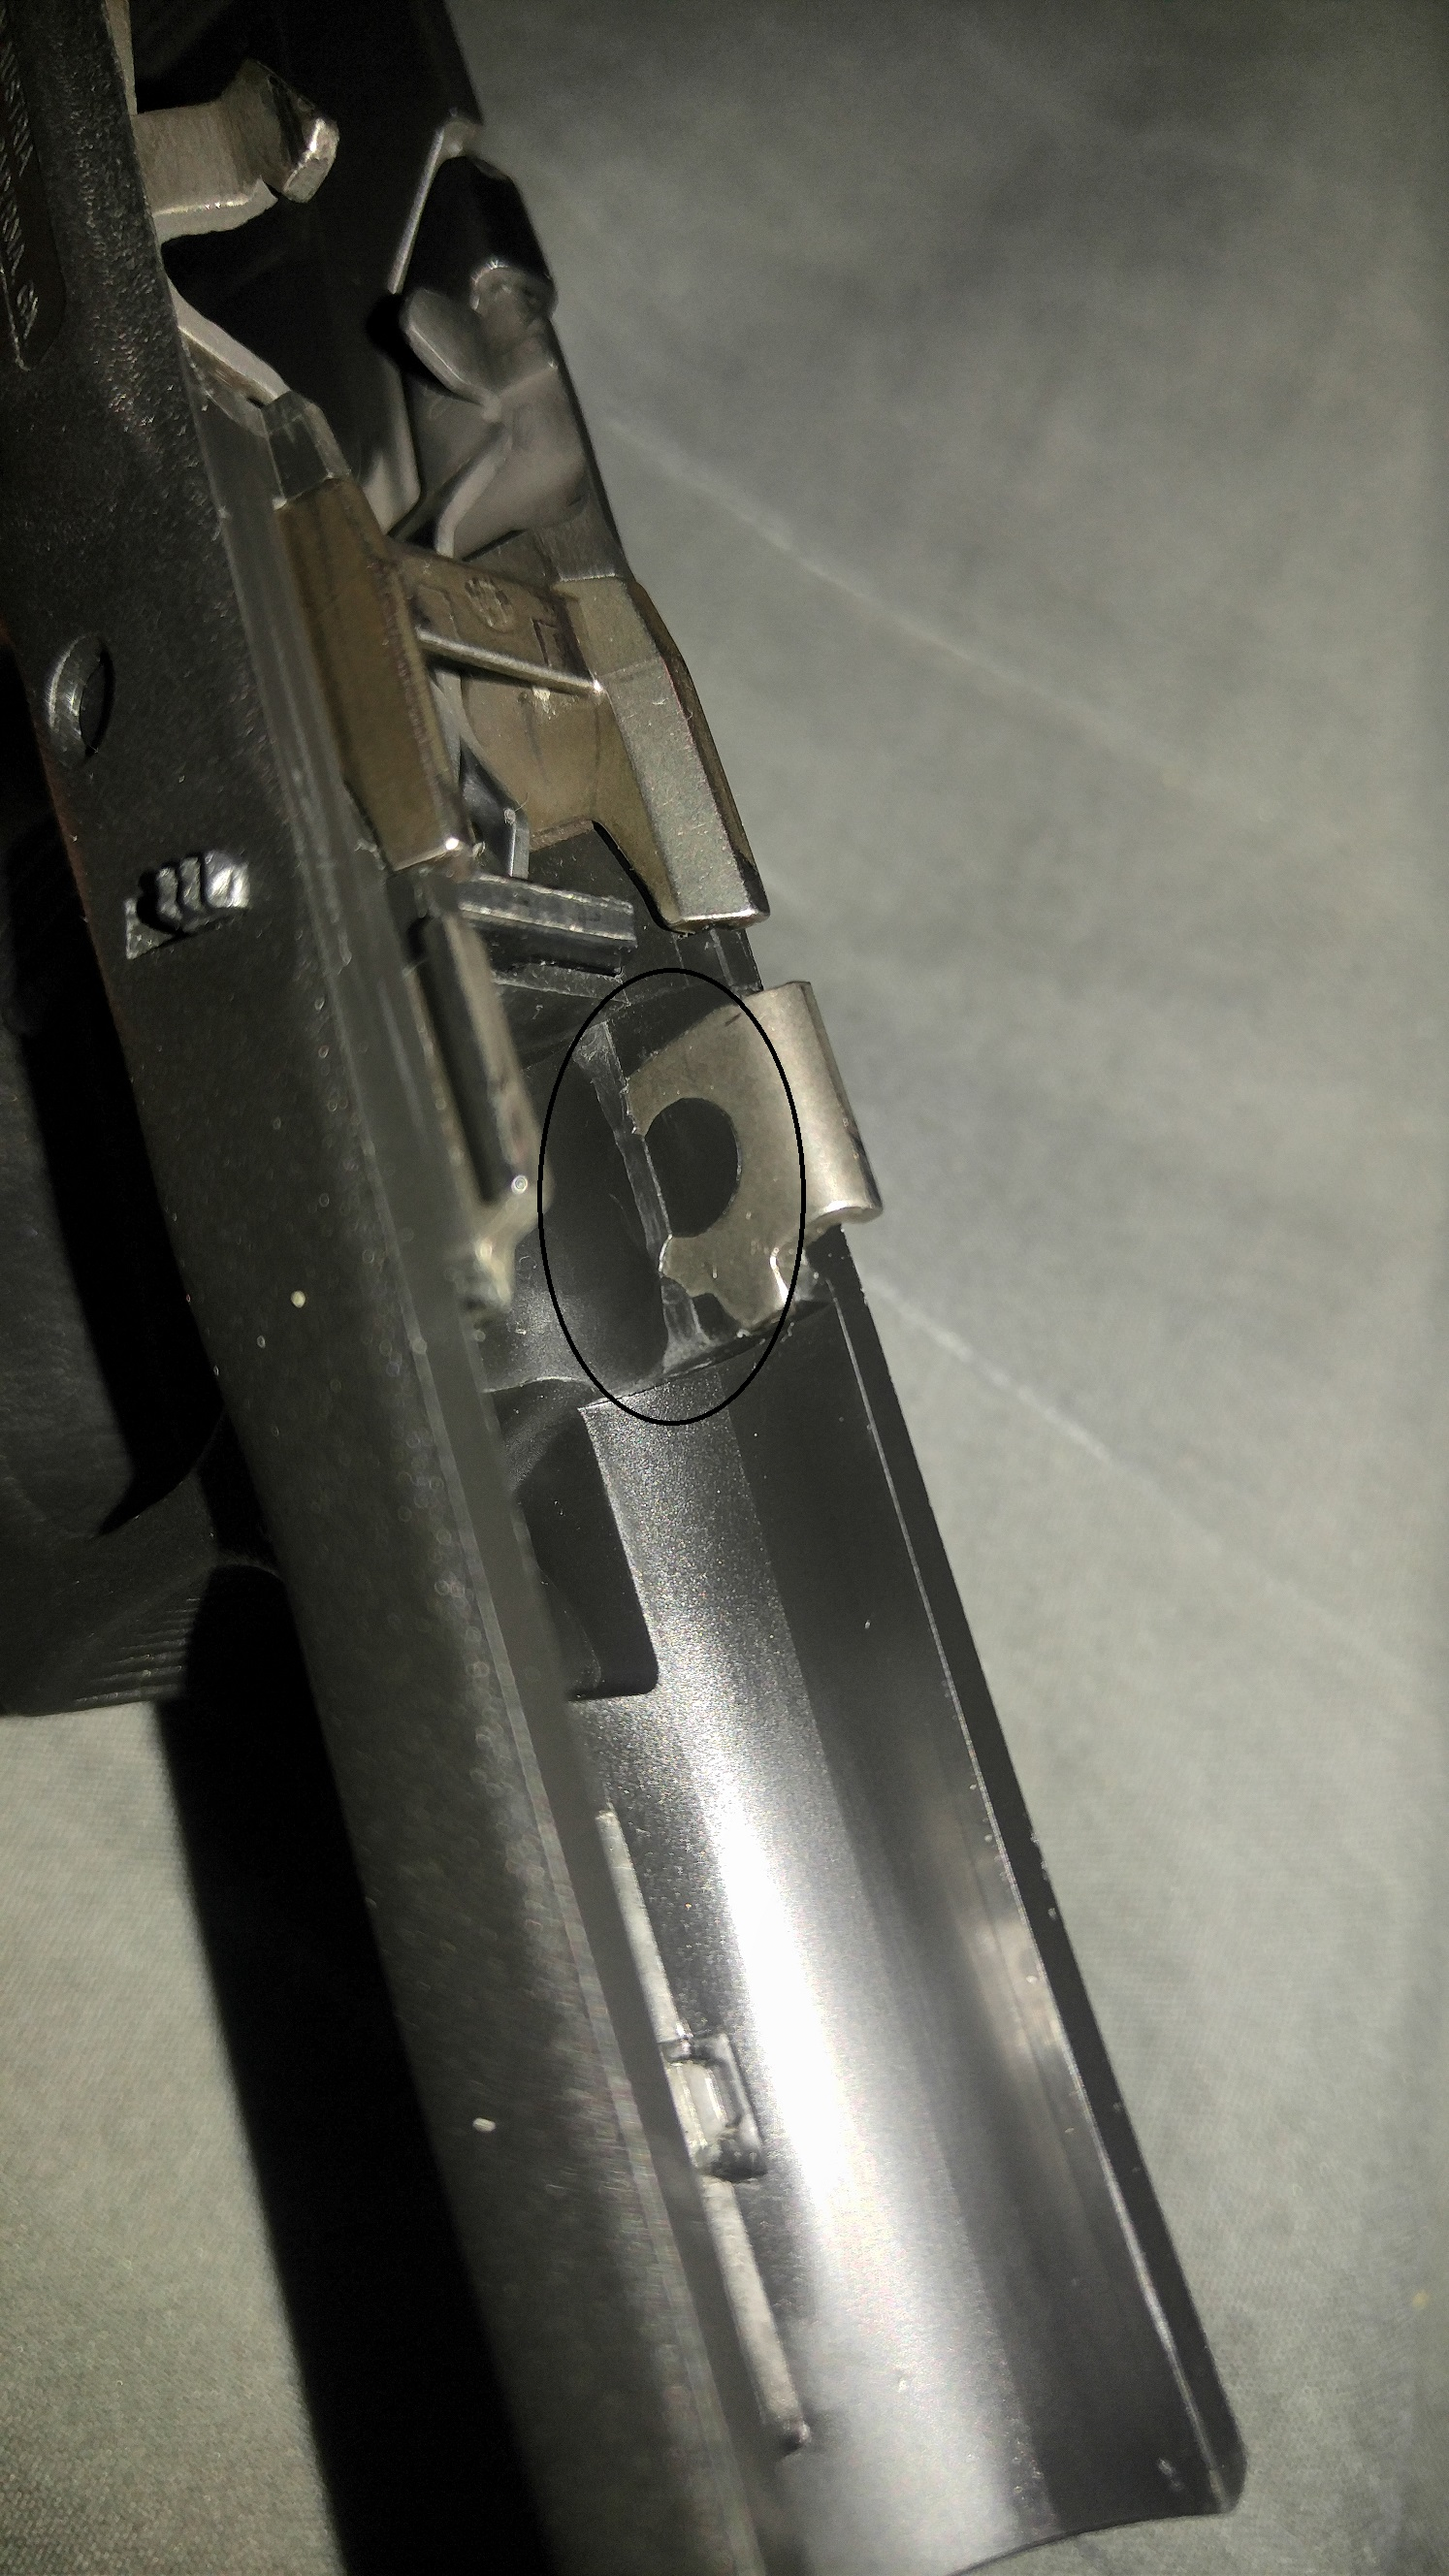 Glock 43 frame wear from recoil spring assembly